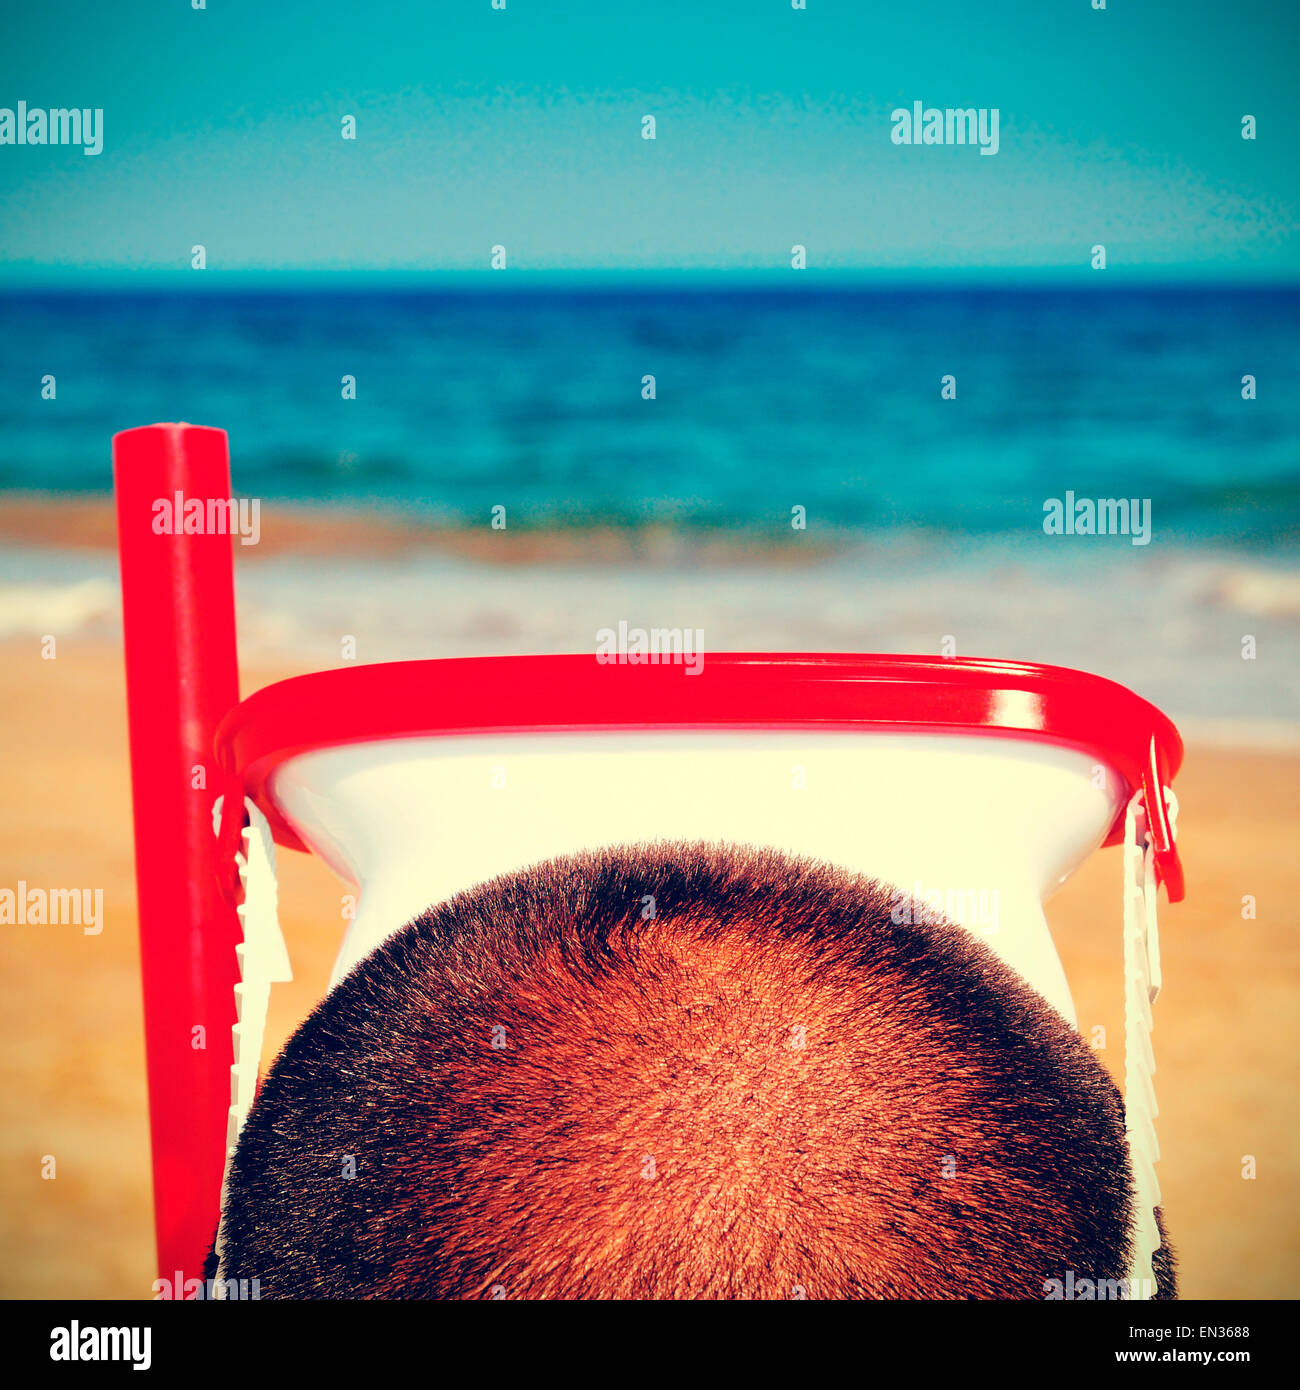 picture from the back of a man wearing a diving mask and a snorkel on the beach, with a retro effect - Stock Image